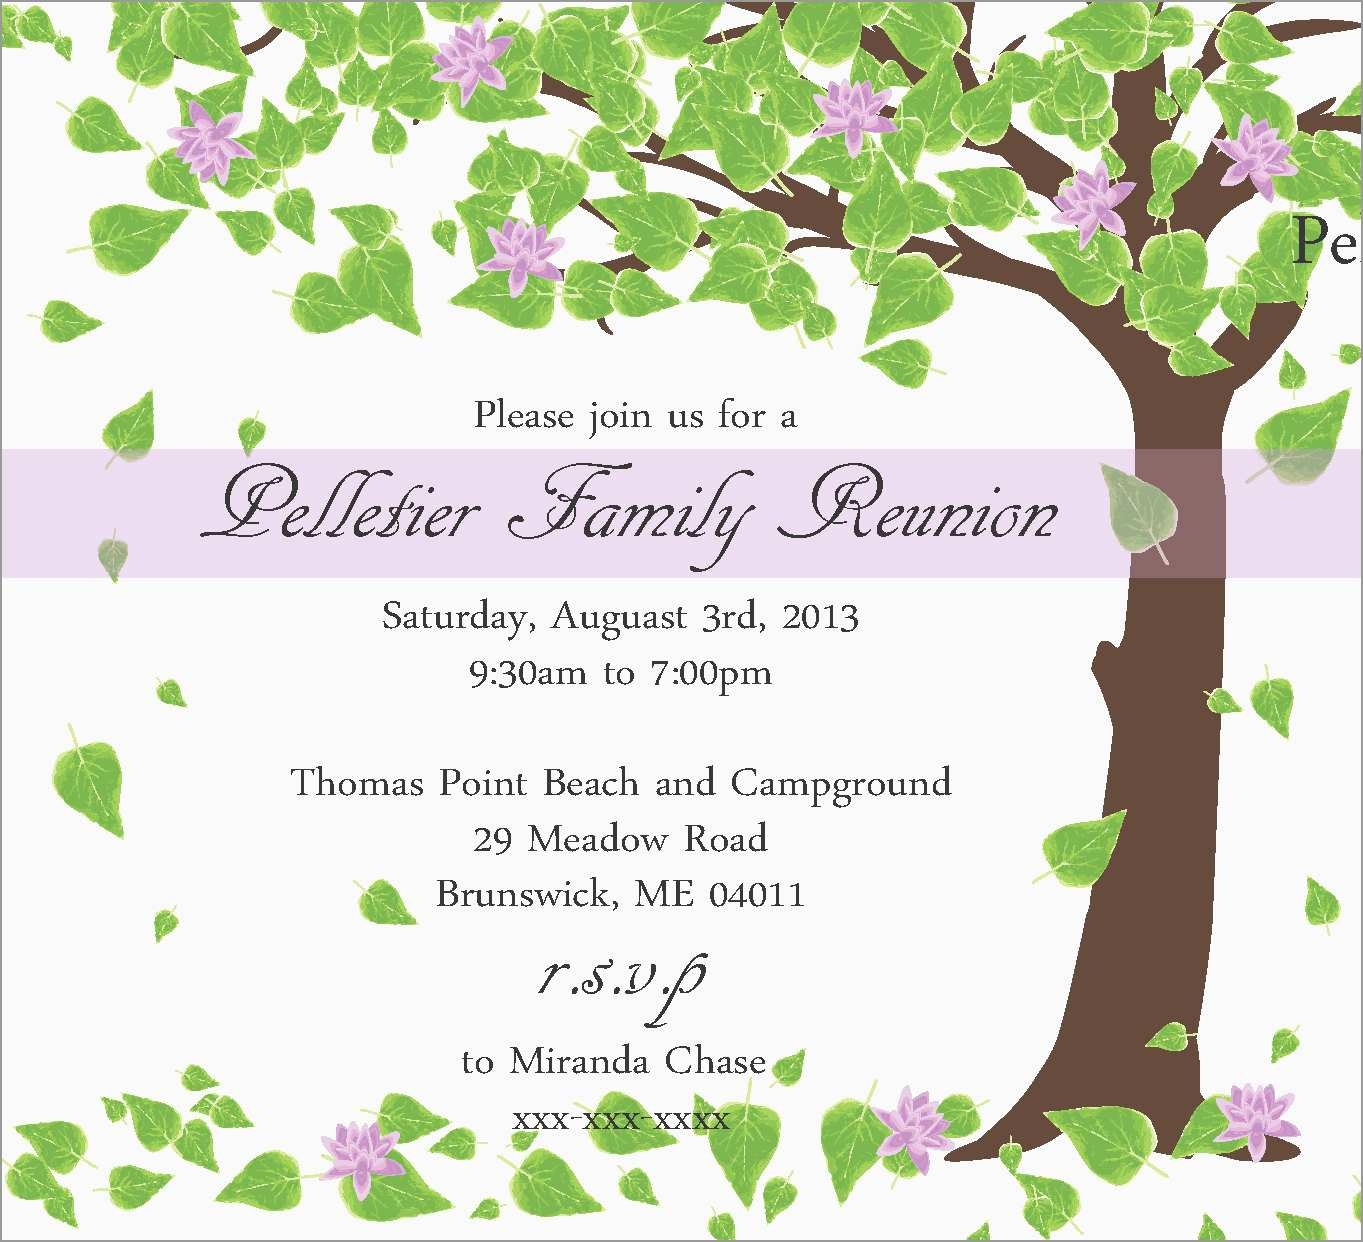 Inspirational Family Reunion Invitation Templates Free | Best Of - Free Printable Family Reunion Invitations